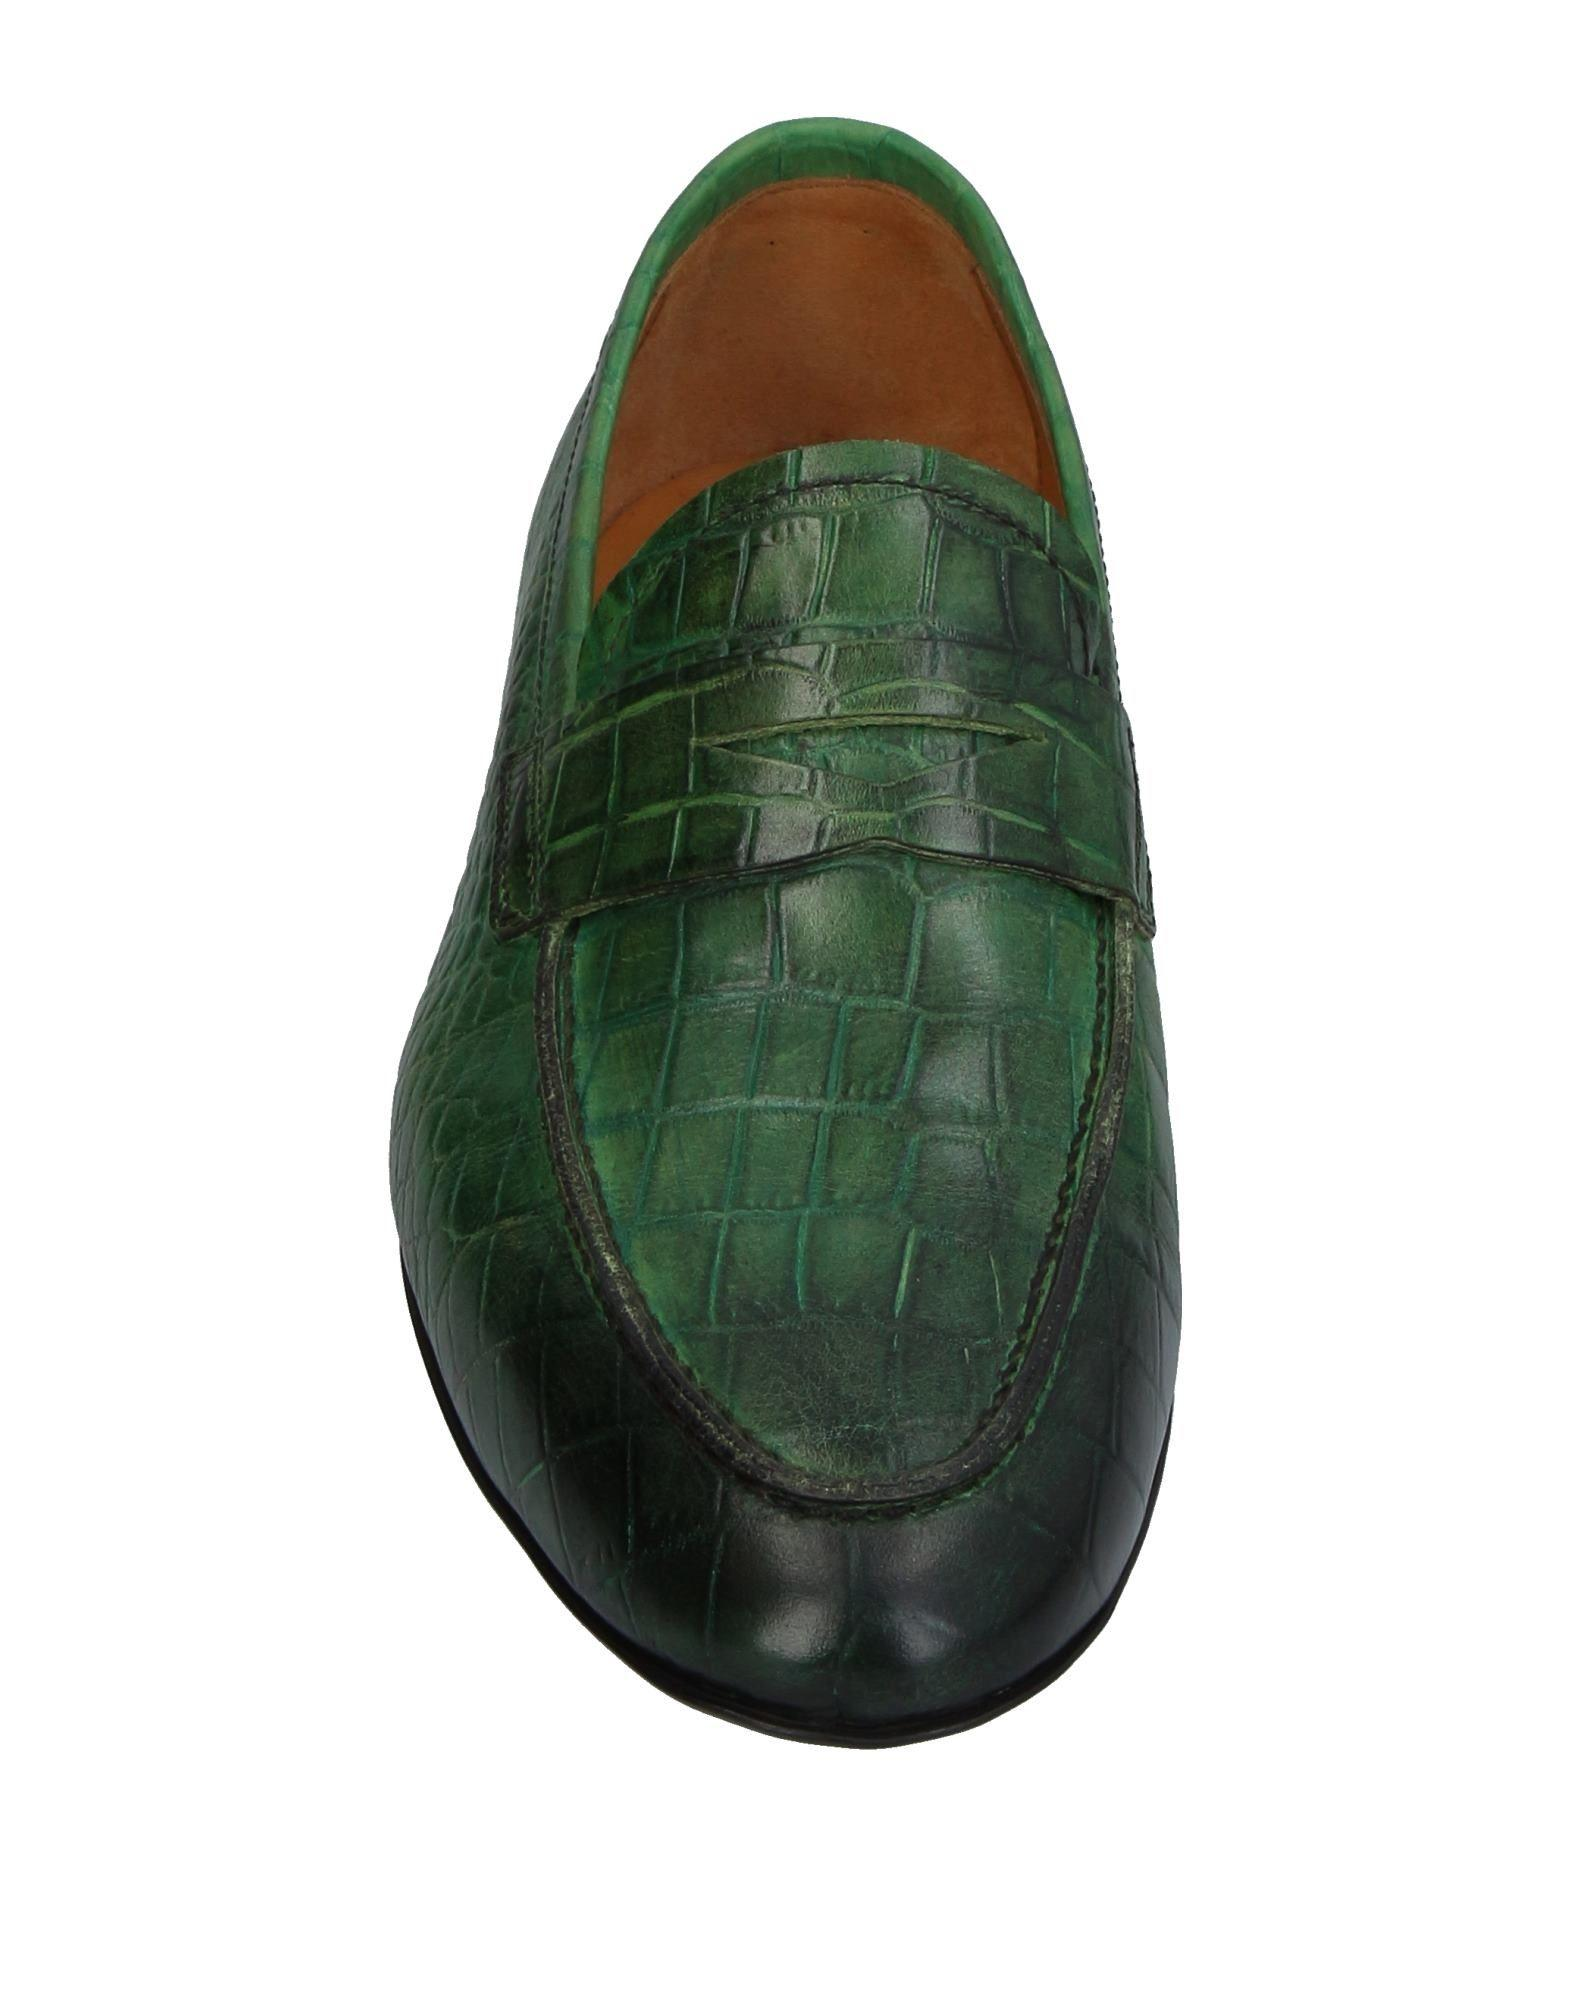 Campanile Leather Loafer in Green for Men